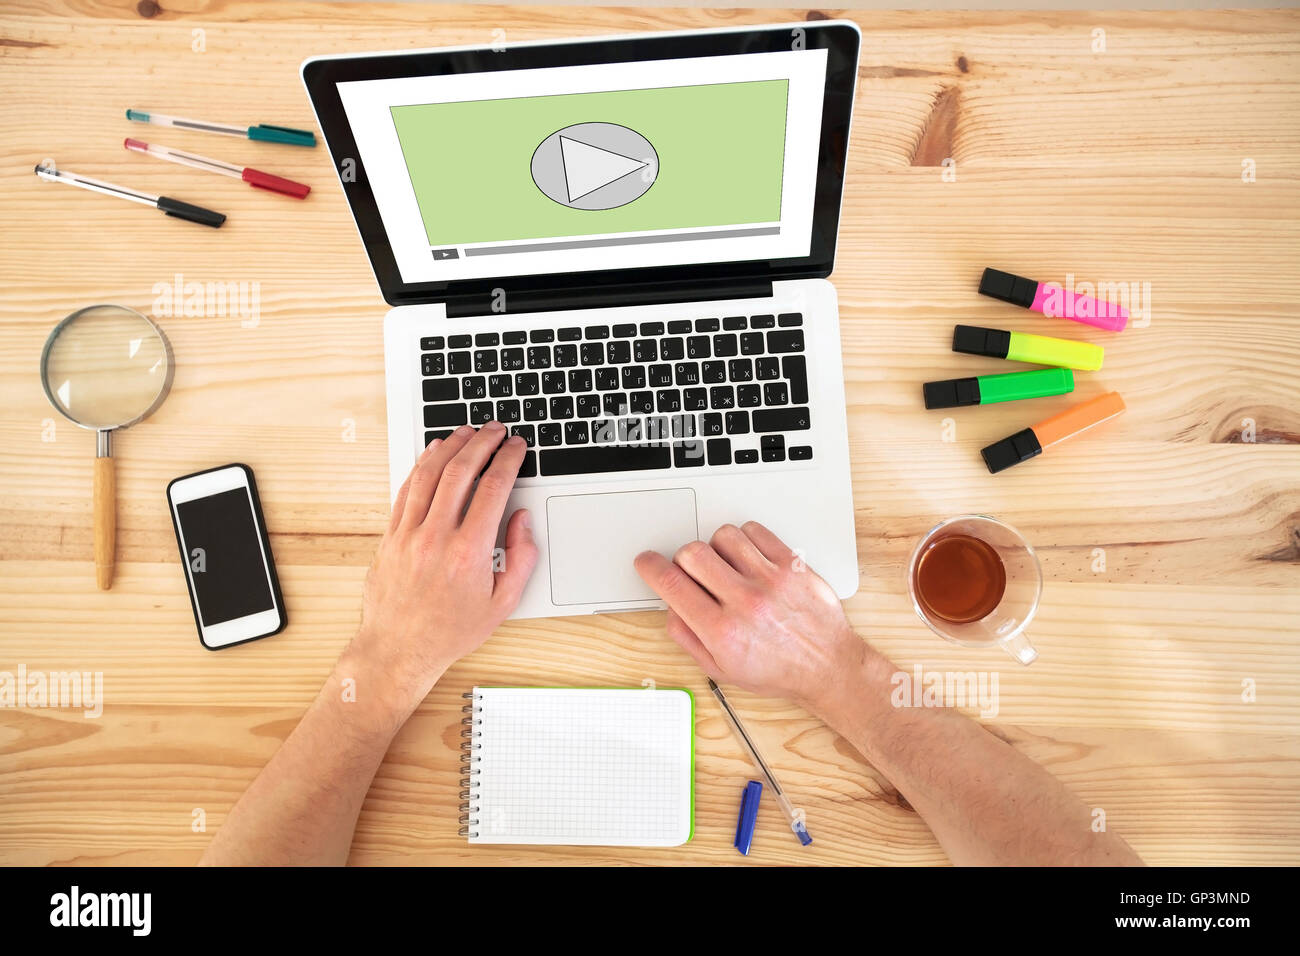 video play button on the screen of laptop computer, audio streaming online, multimedia website - Stock Image